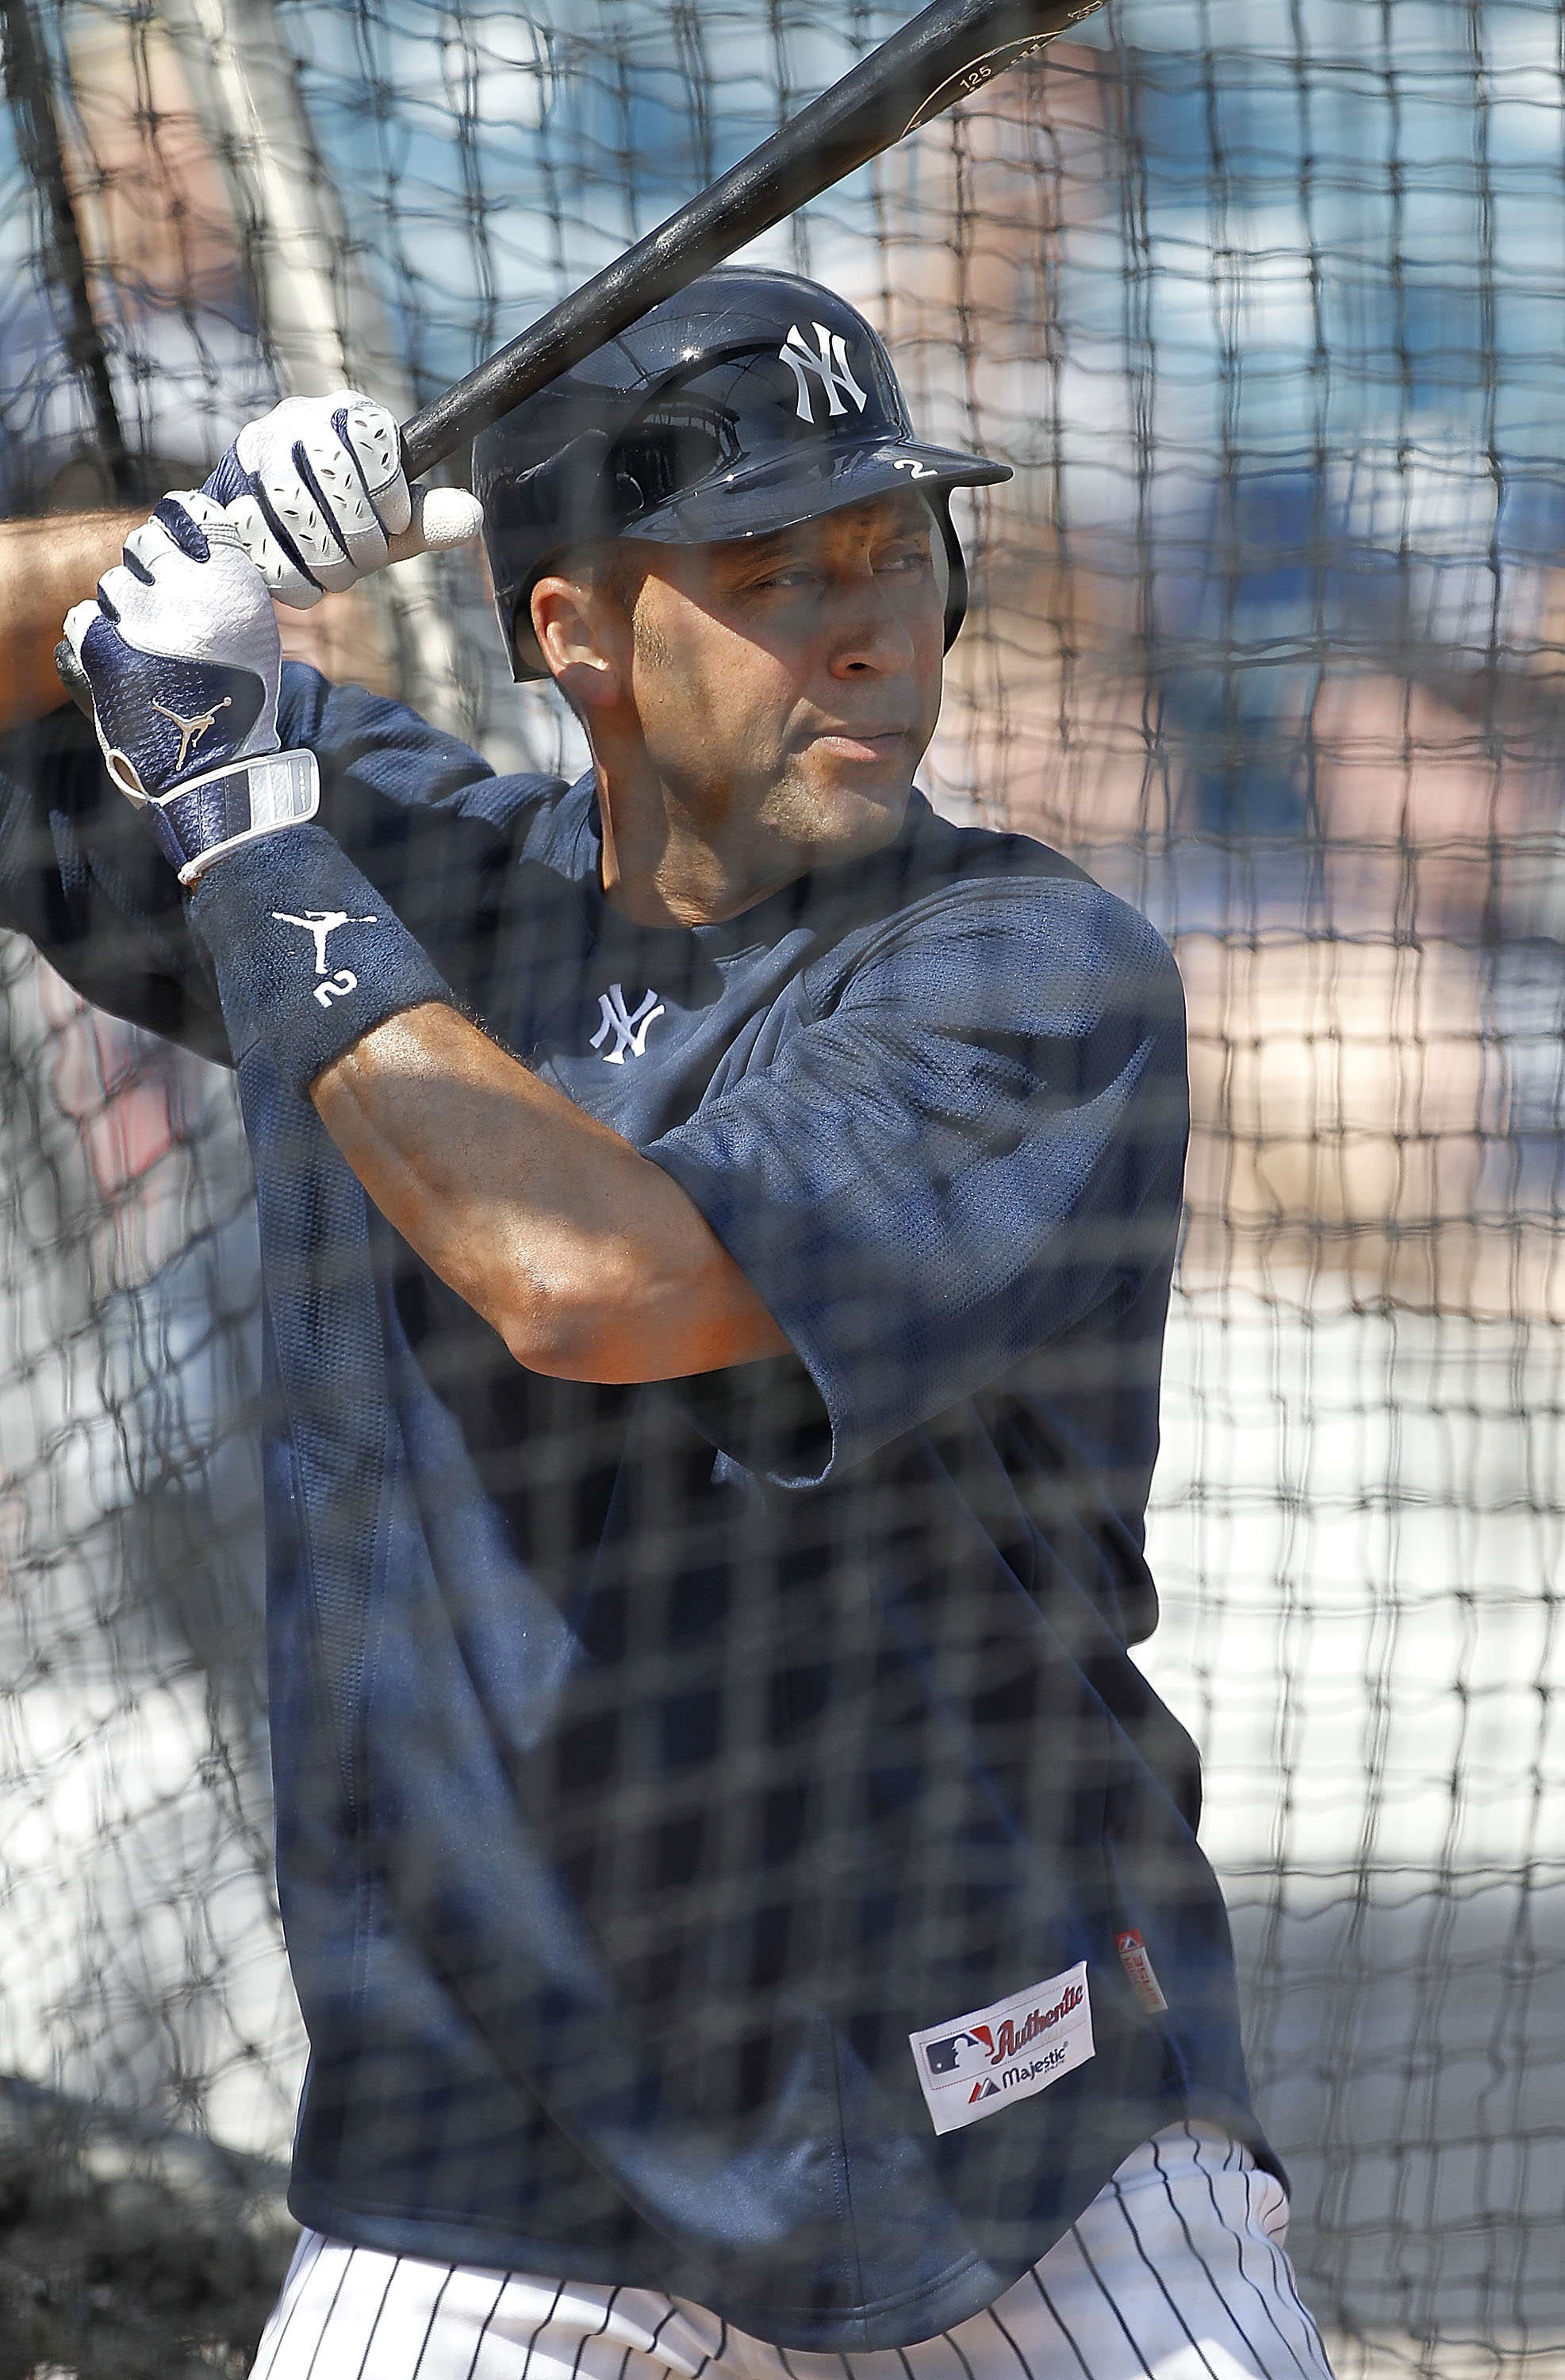 TAMPA, FL - FEBRUARY 20:  Derek Jeter #2 of the New York Yankees takes batting practice during the first full team workout of Spring Training on February 20, 2011 at the George M. Steinbrenner Field in Tampa, Florida.  (Photo by Leon Halip/Getty Images)